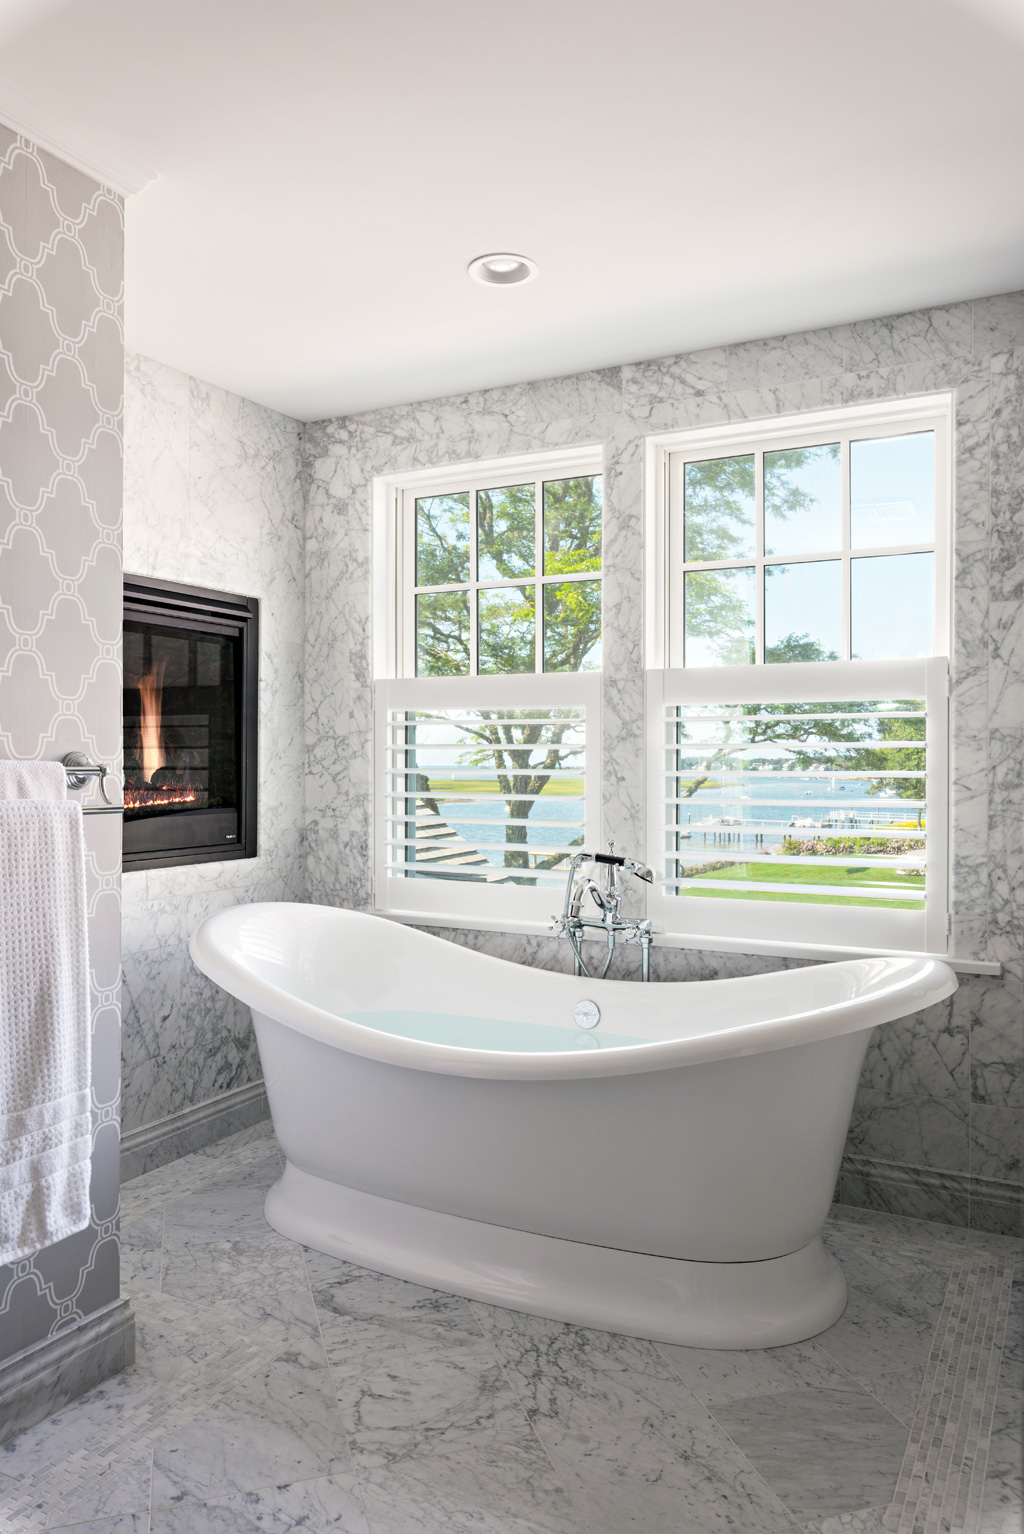 Bass River Builders and Remodeling - Cape Cod Waterfront - Baths